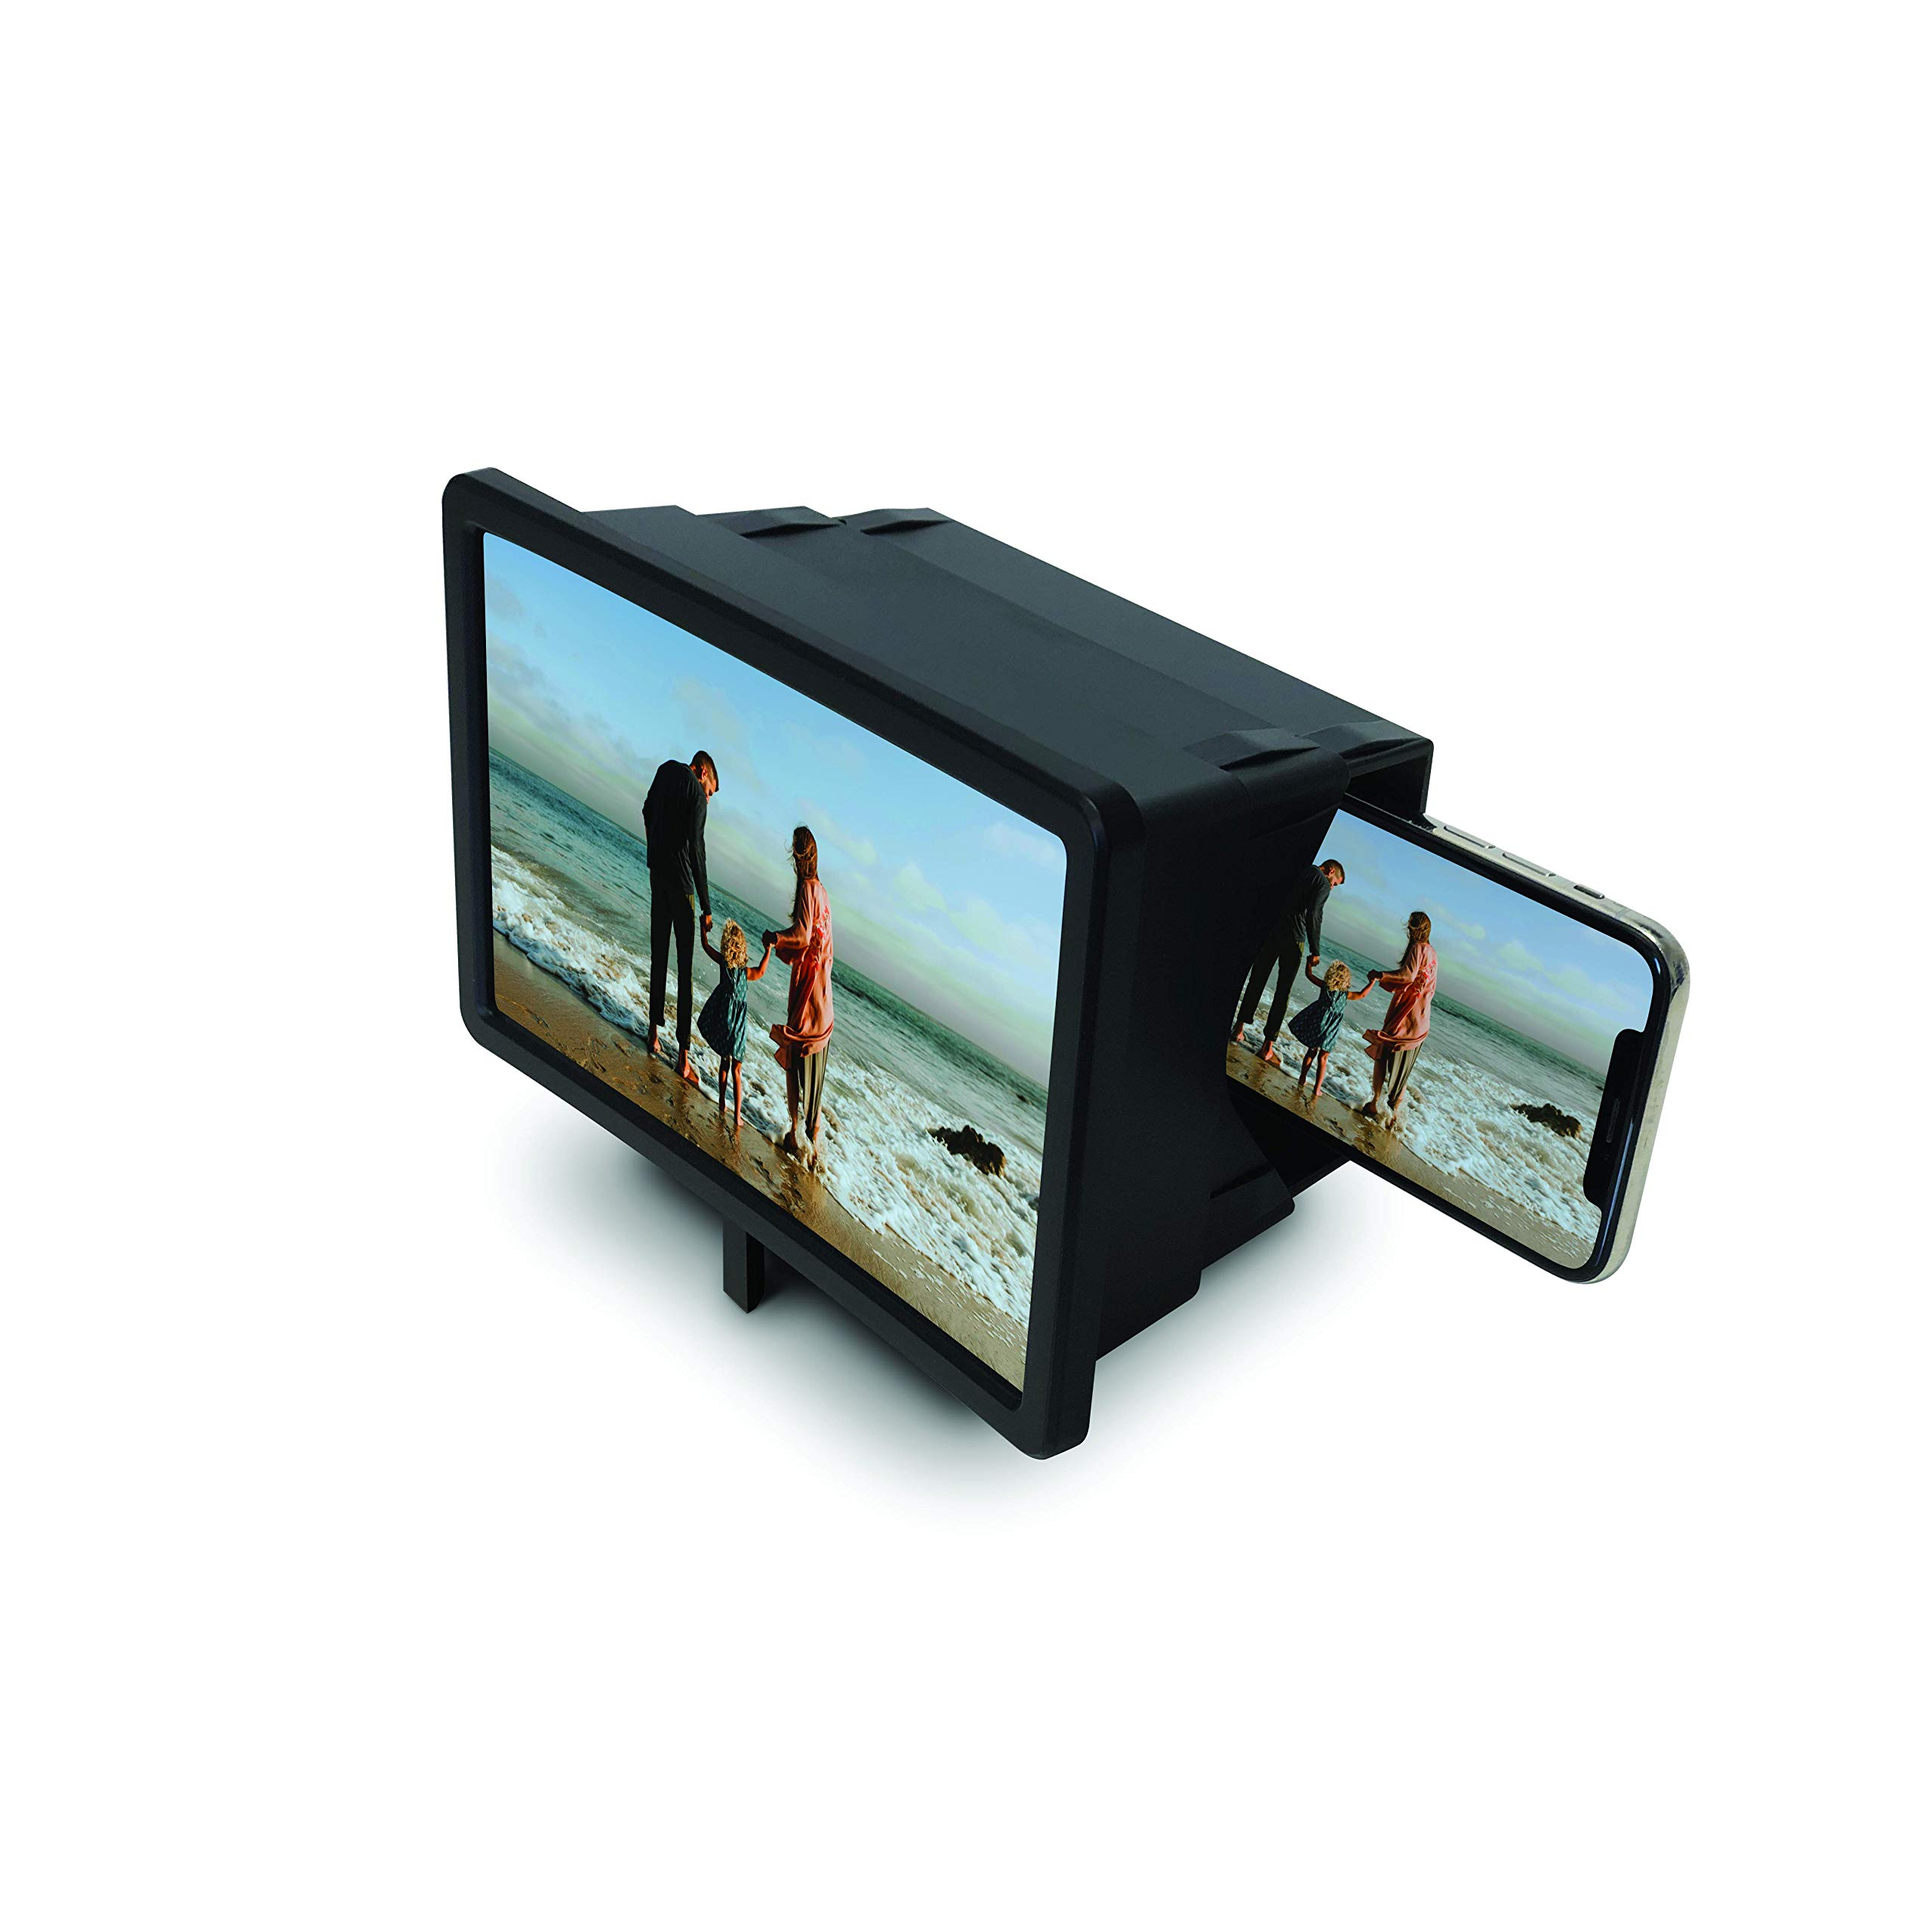 Big Picture Smartphone Magnification System Viewing Screen That is Two Times Bigger Cell Phone Magnifier 3D Screen Enlarge Video Movie by THE BIG PICTURE